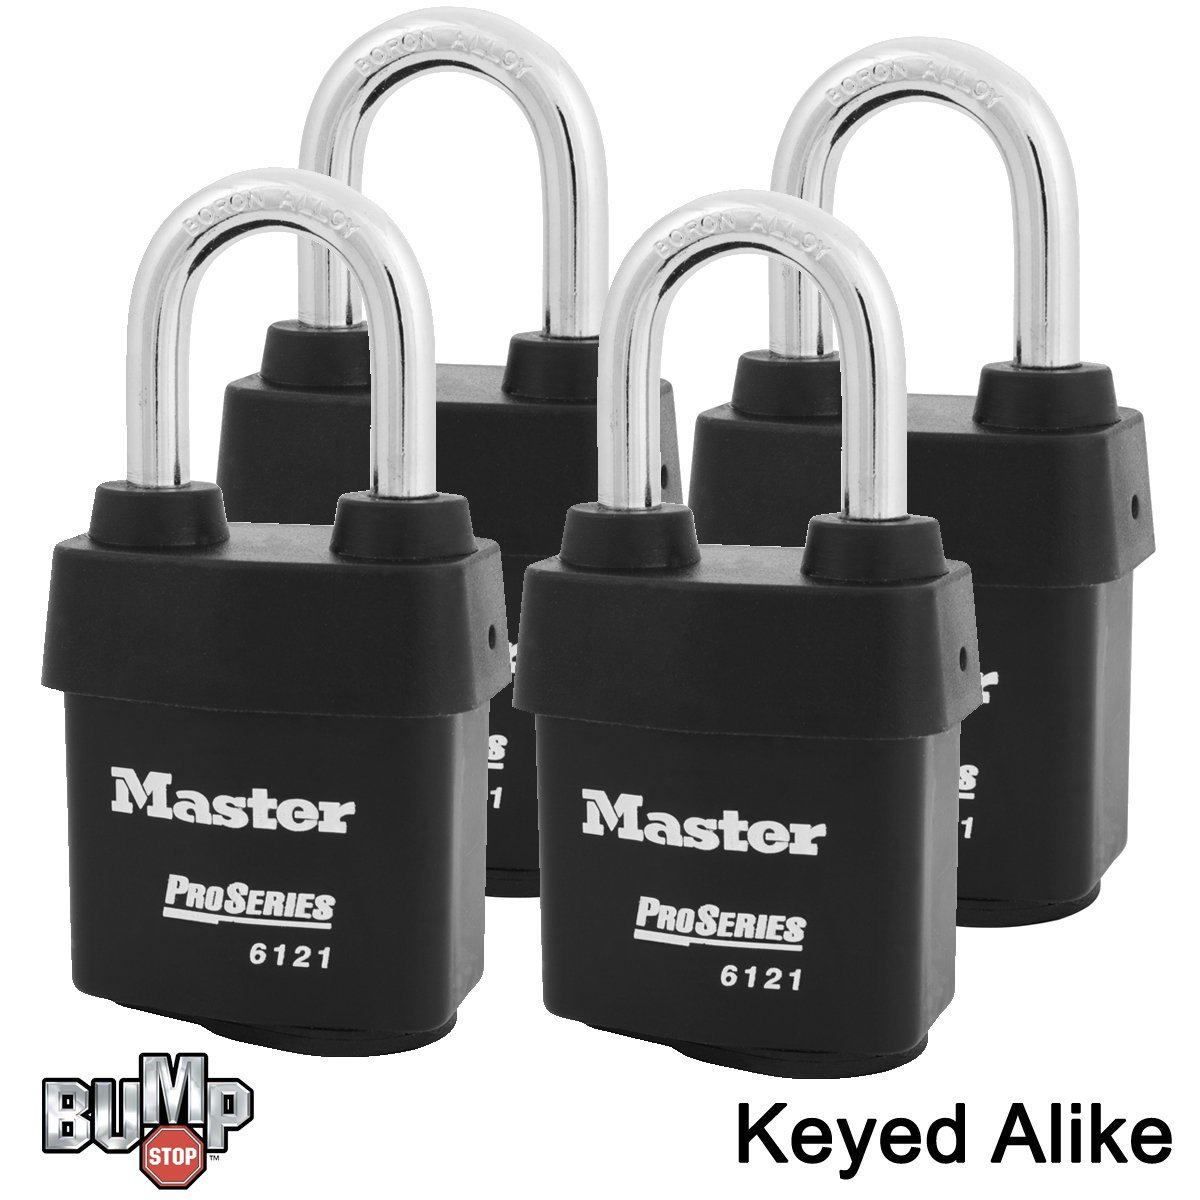 Master Lock - 6121NKALF-4 - Four (4) High Security Pro Series Padlocks w/ BumpStop Technology